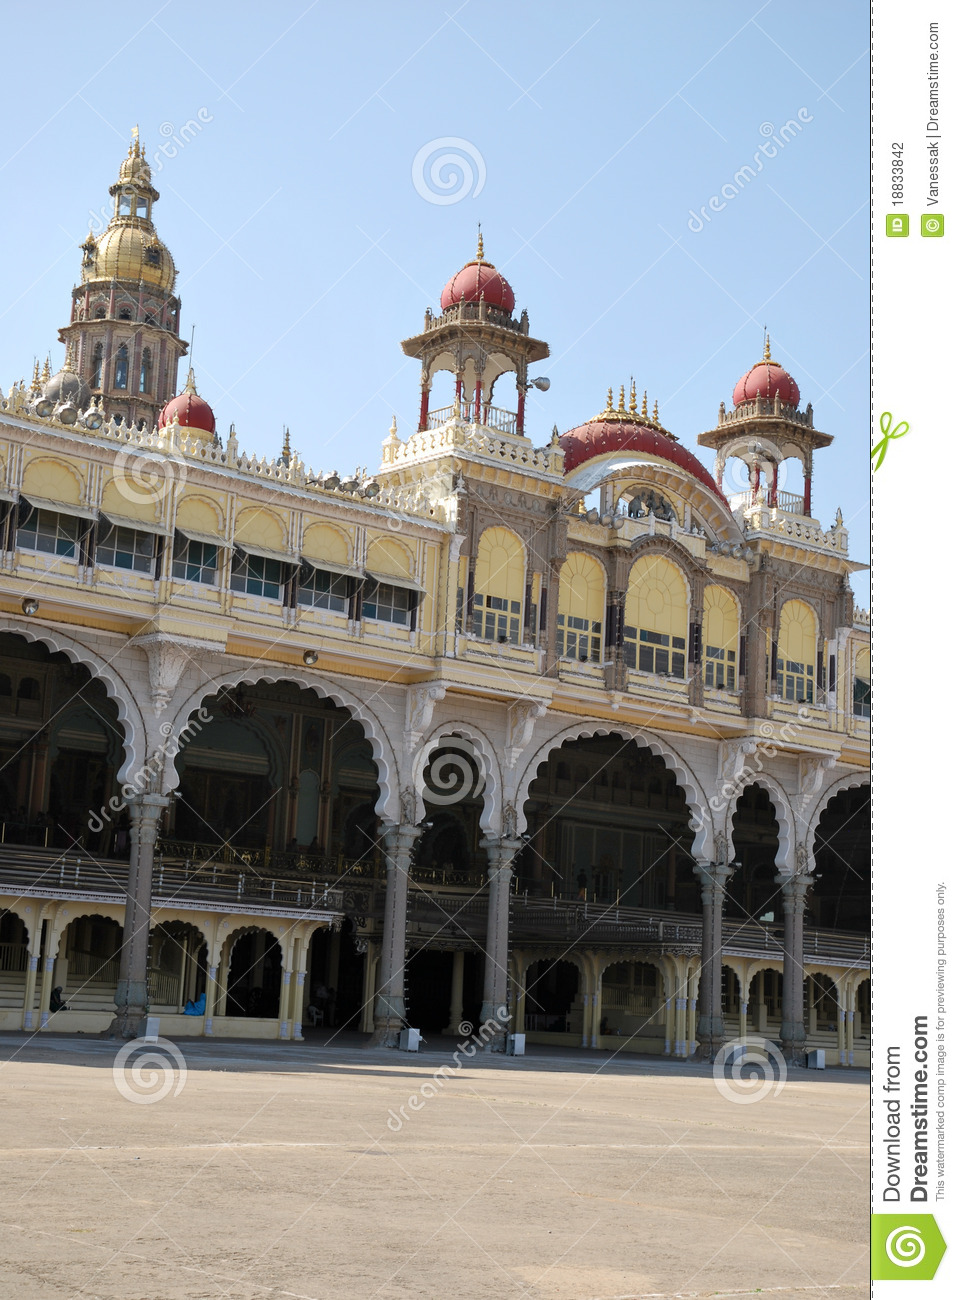 Tourism in Mysore Palace